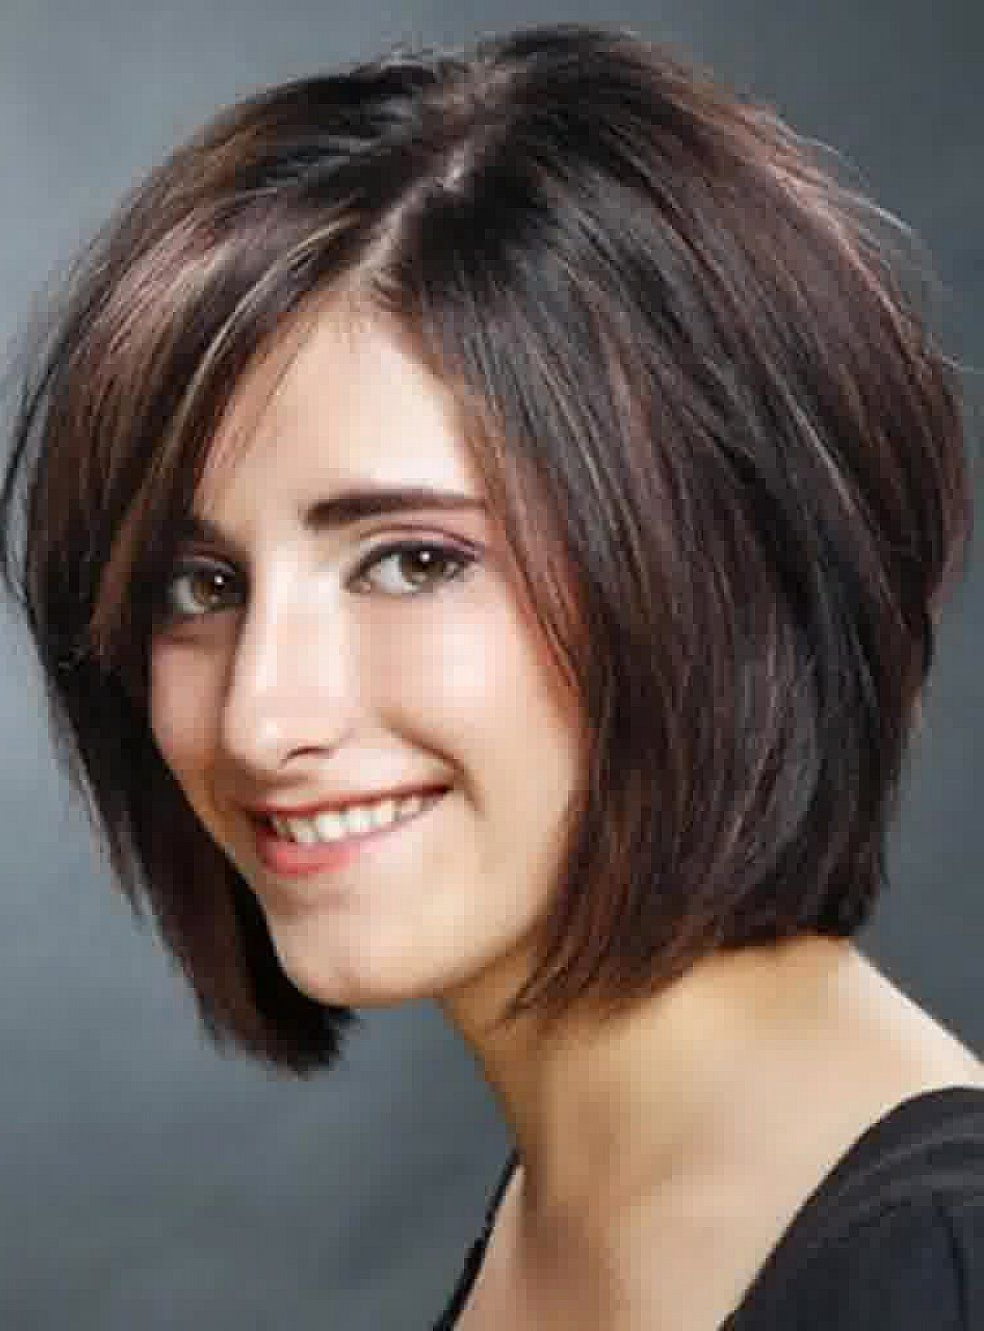 The Creation Of Short Hairstyles For Square Faces: Very Short Pertaining To Short Haircuts For Square Face (View 24 of 25)